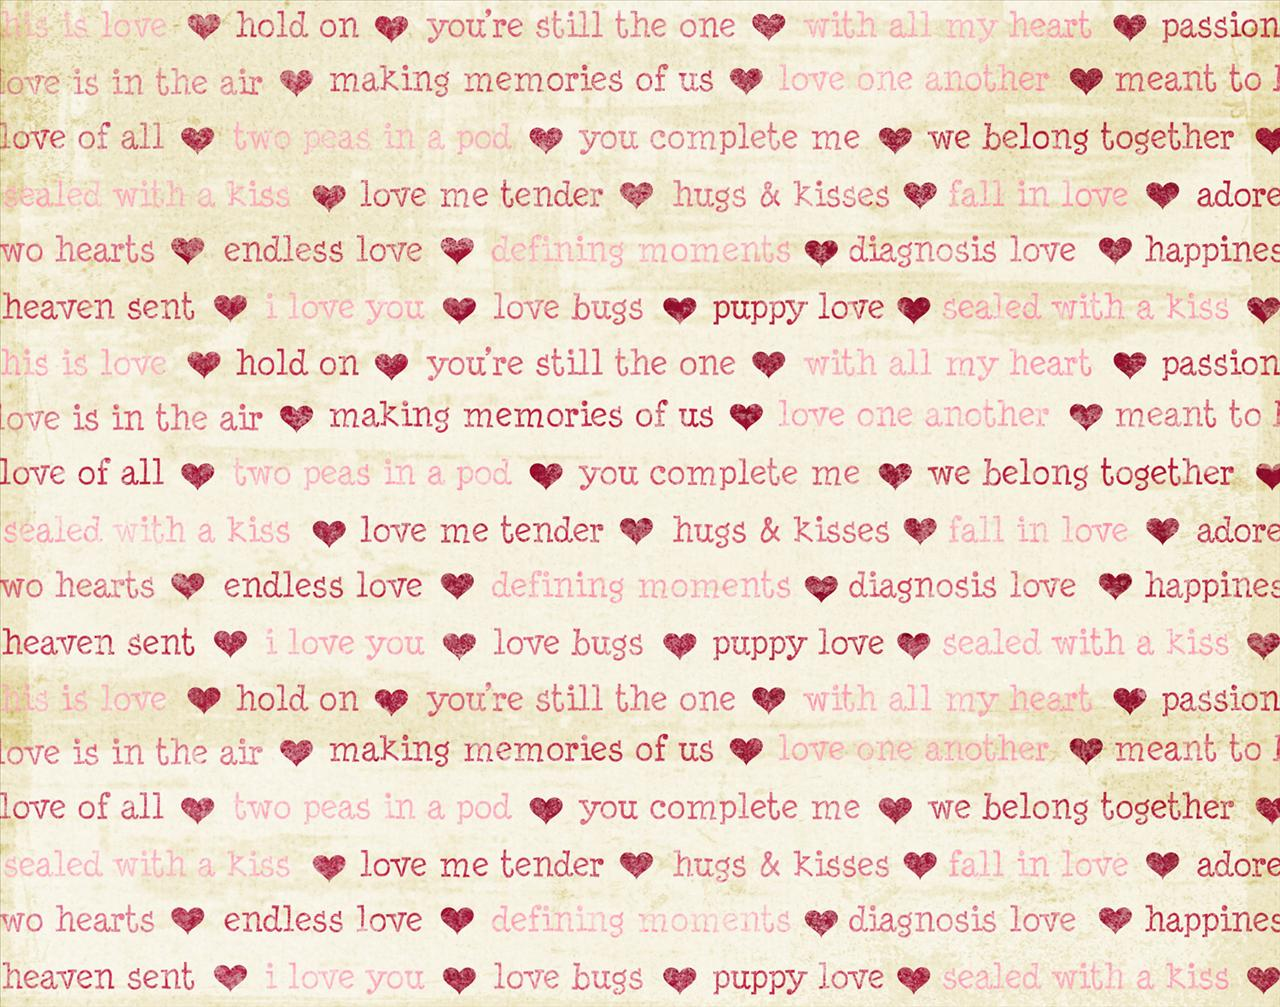 Words of Love with hearts Backgrounds